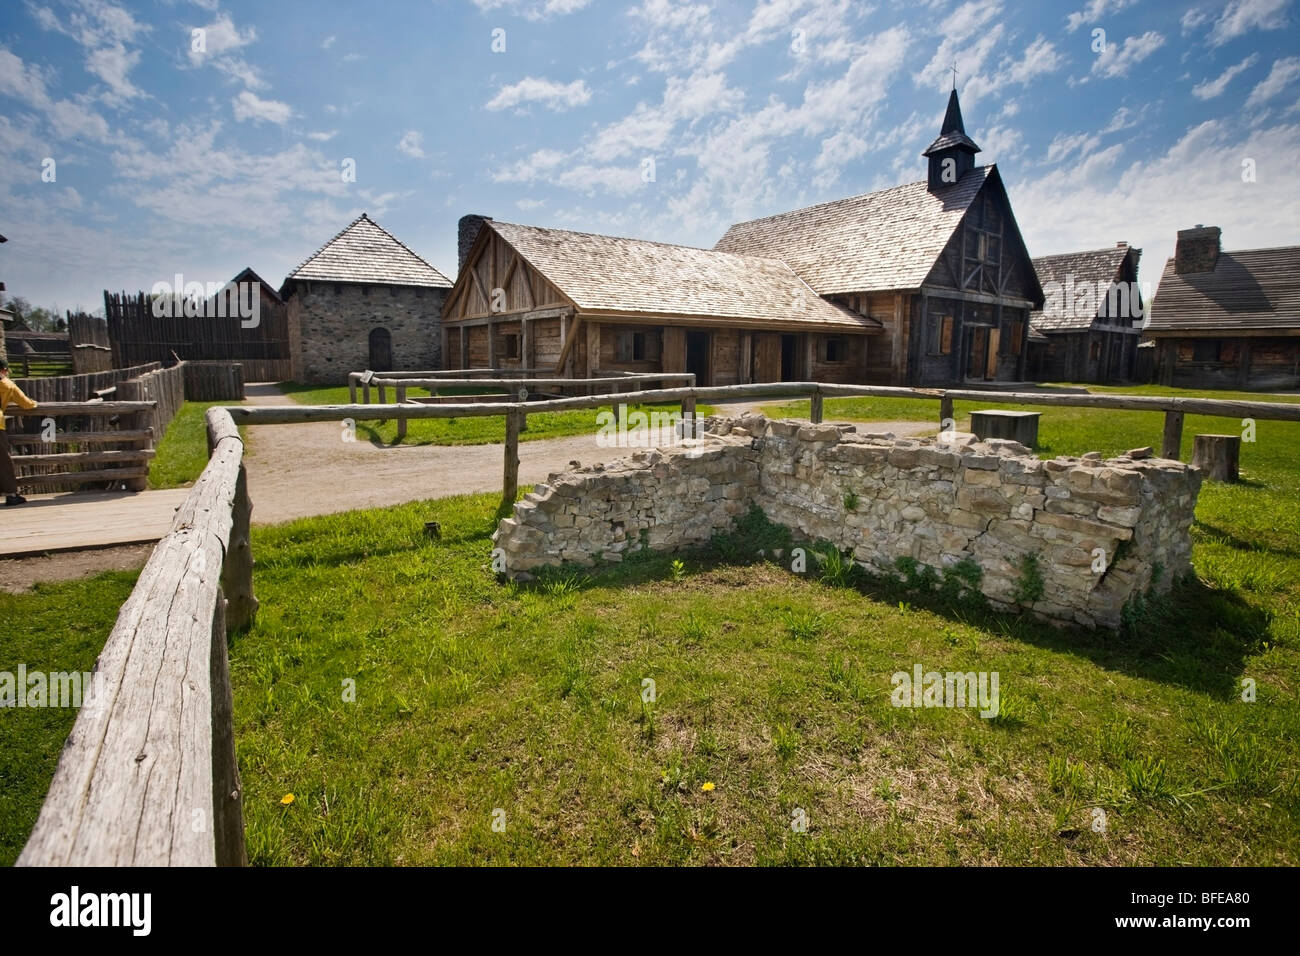 Old stone wall at the entrance to the Sainte-Marie Among the Hurons settlement in the town of Midland, Ontario, - Stock Image